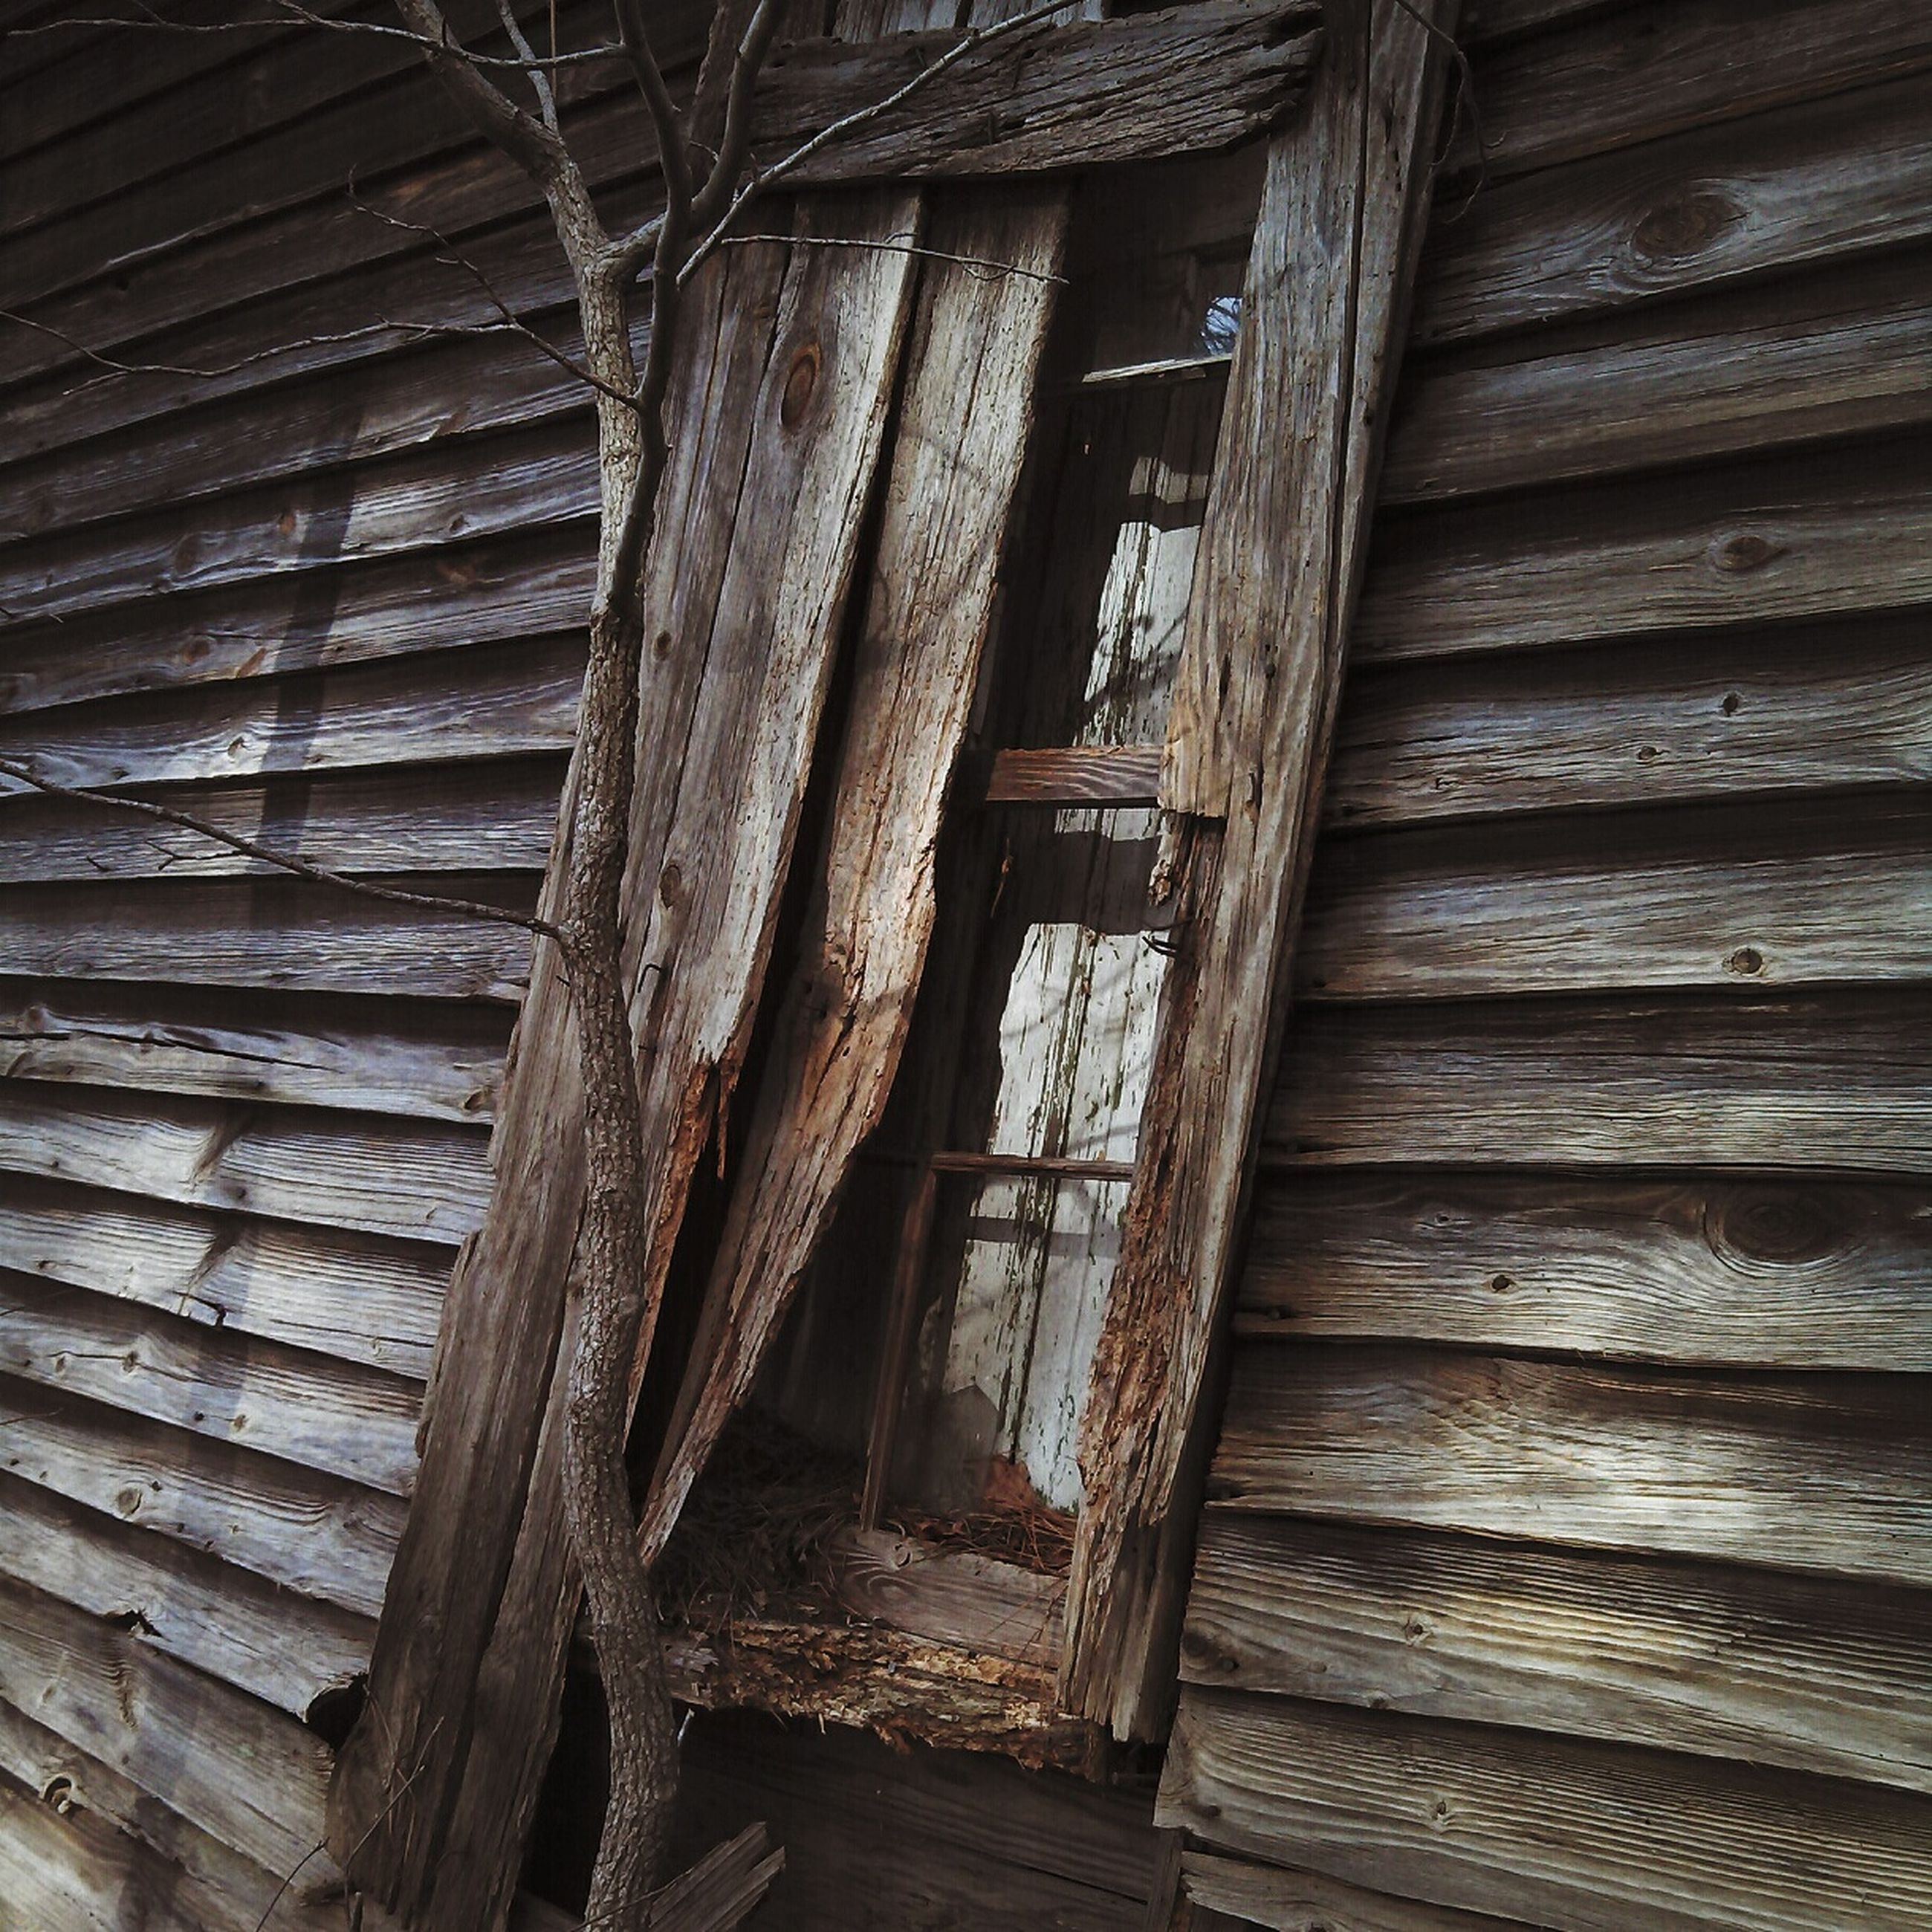 wood - material, wooden, wood, weathered, plank, old, built structure, damaged, full frame, abandoned, architecture, textured, close-up, pattern, backgrounds, run-down, building exterior, house, outdoors, day